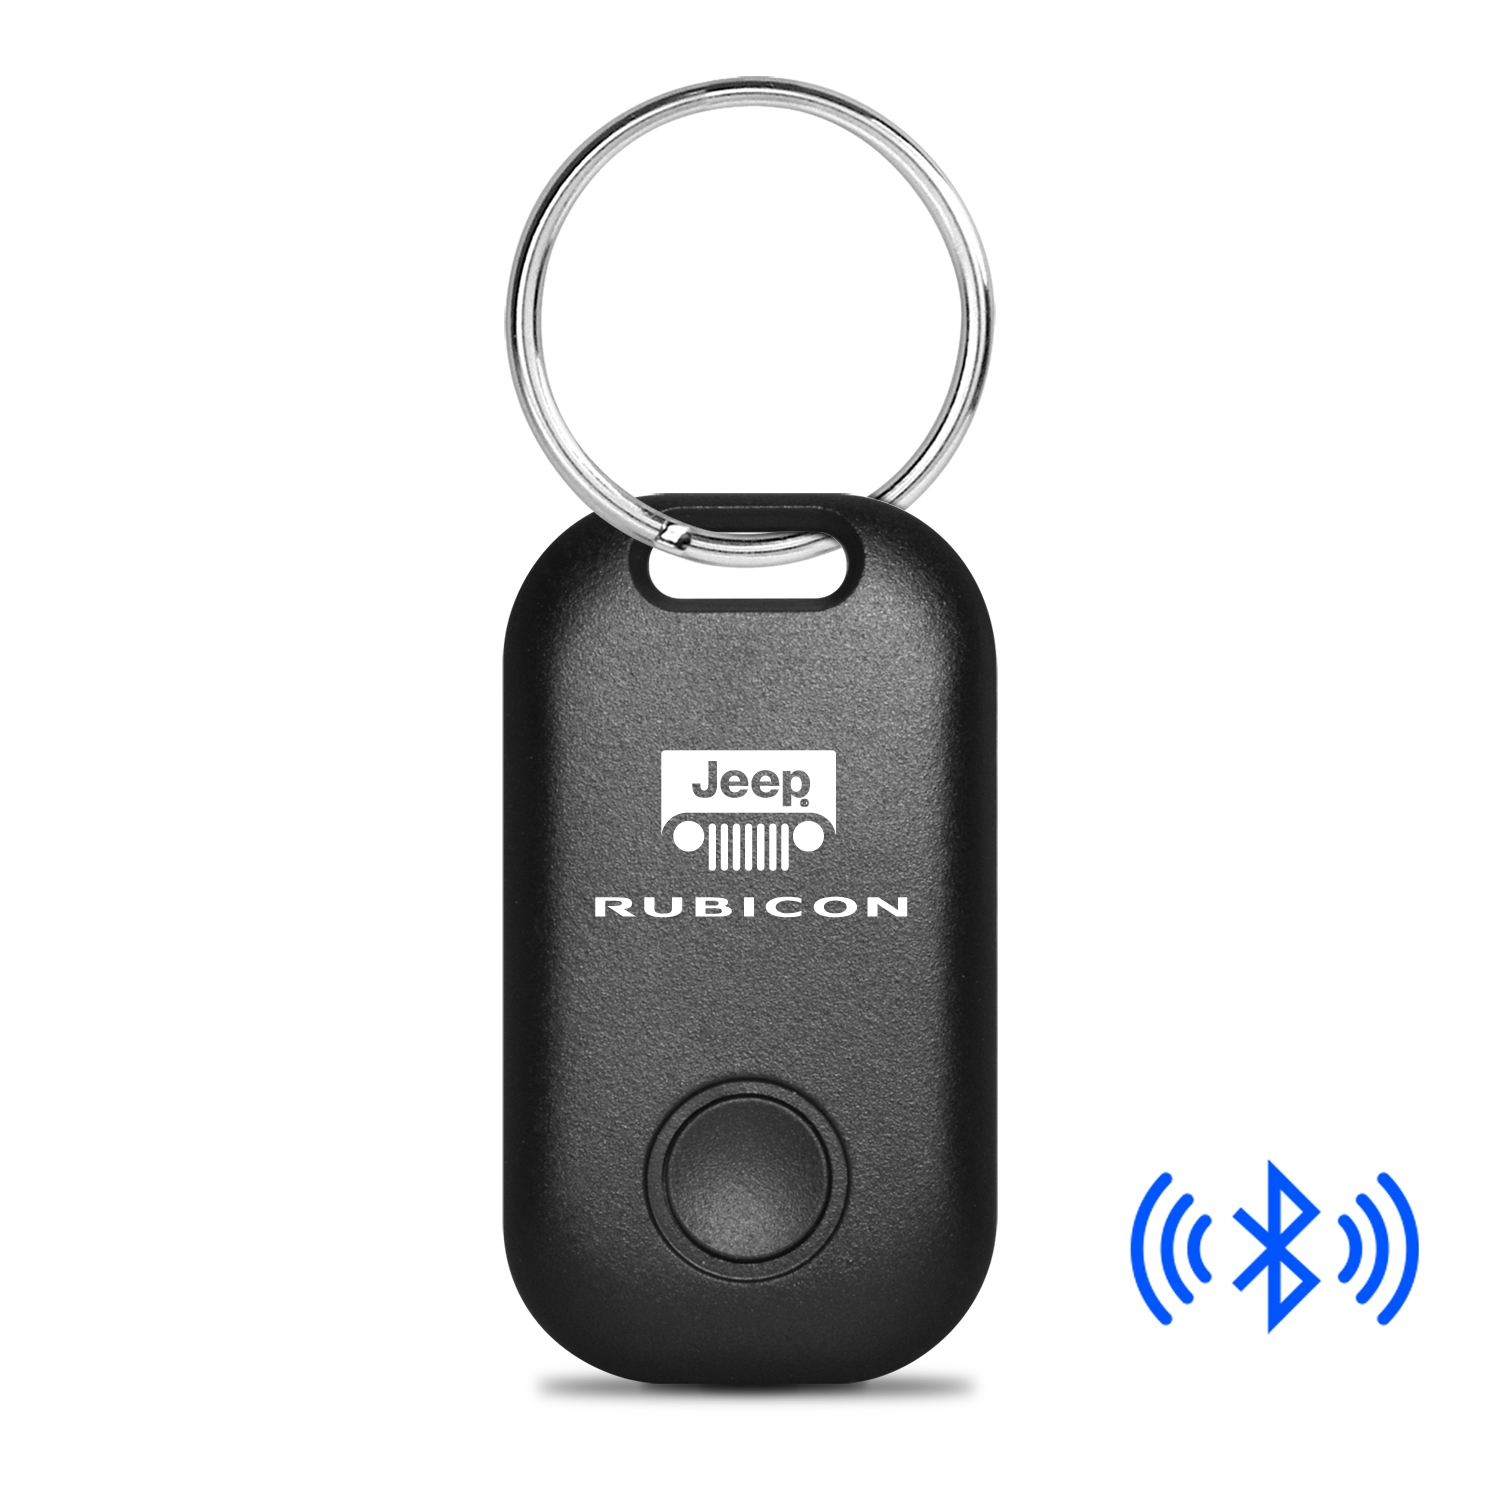 Jeep Rubicon Wrangler Bluetooth Smart Key Finder Black Key Chain